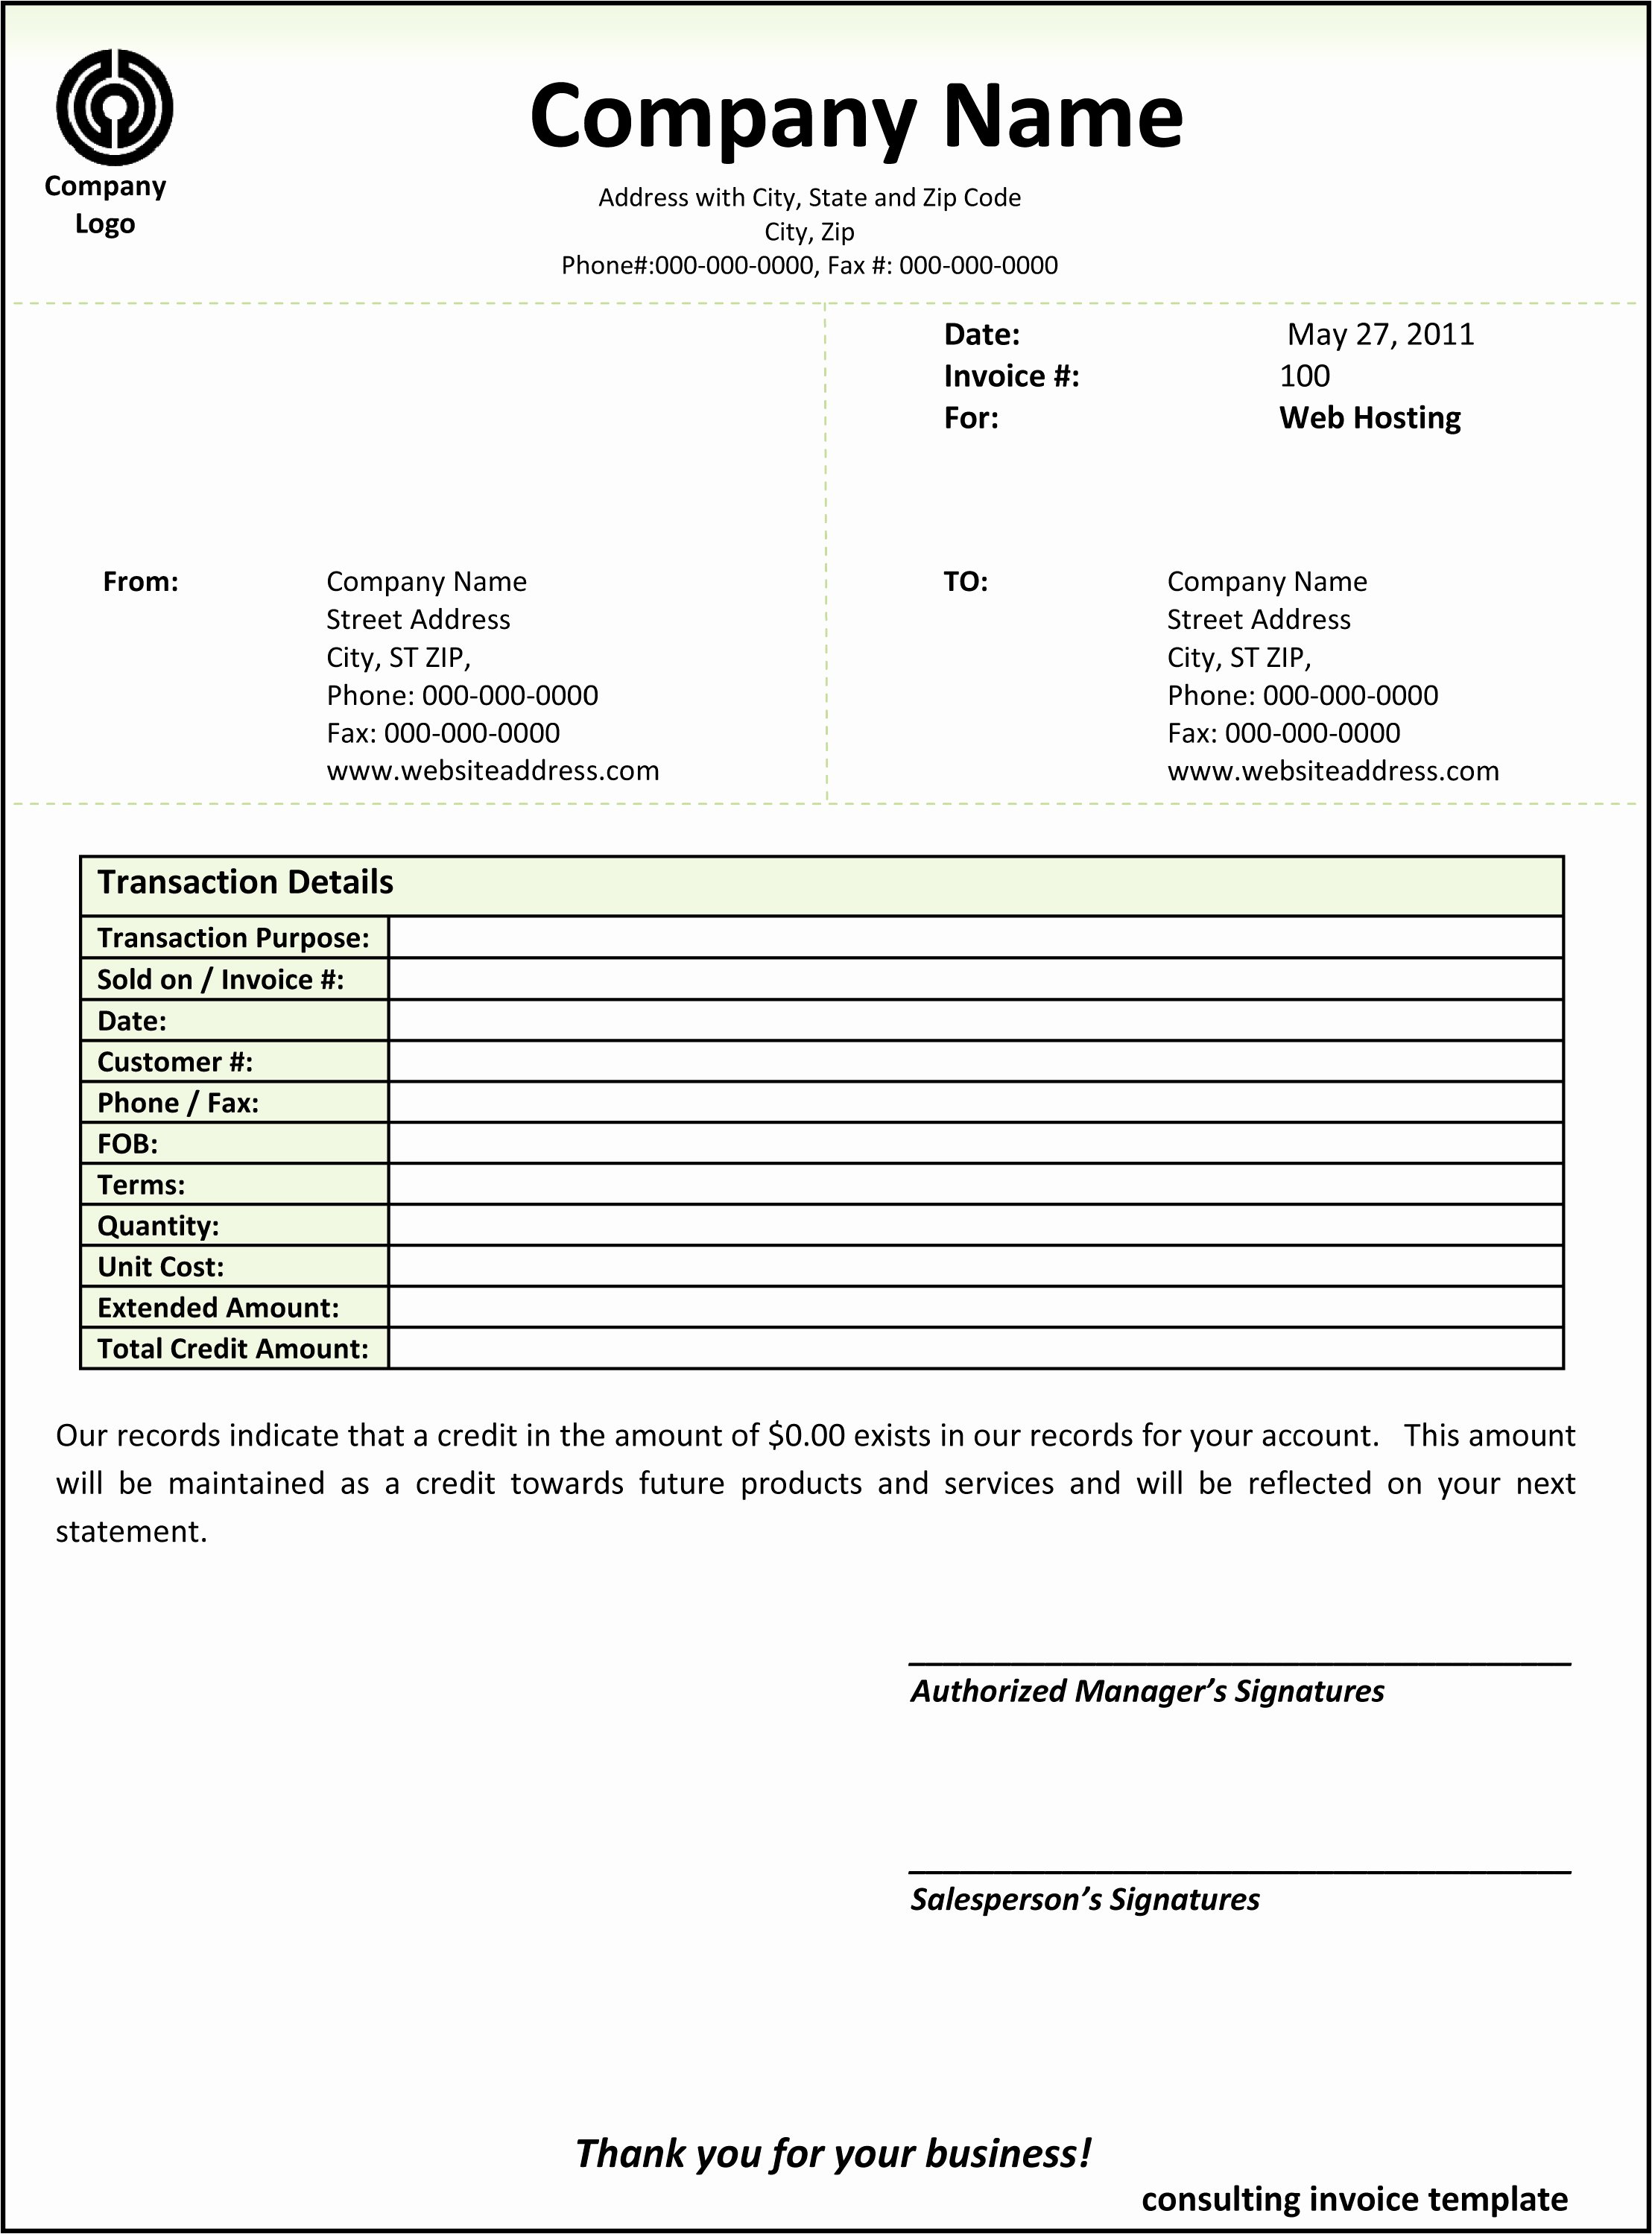 Consulting Invoice Template Word New Consulting Invoice Template Word